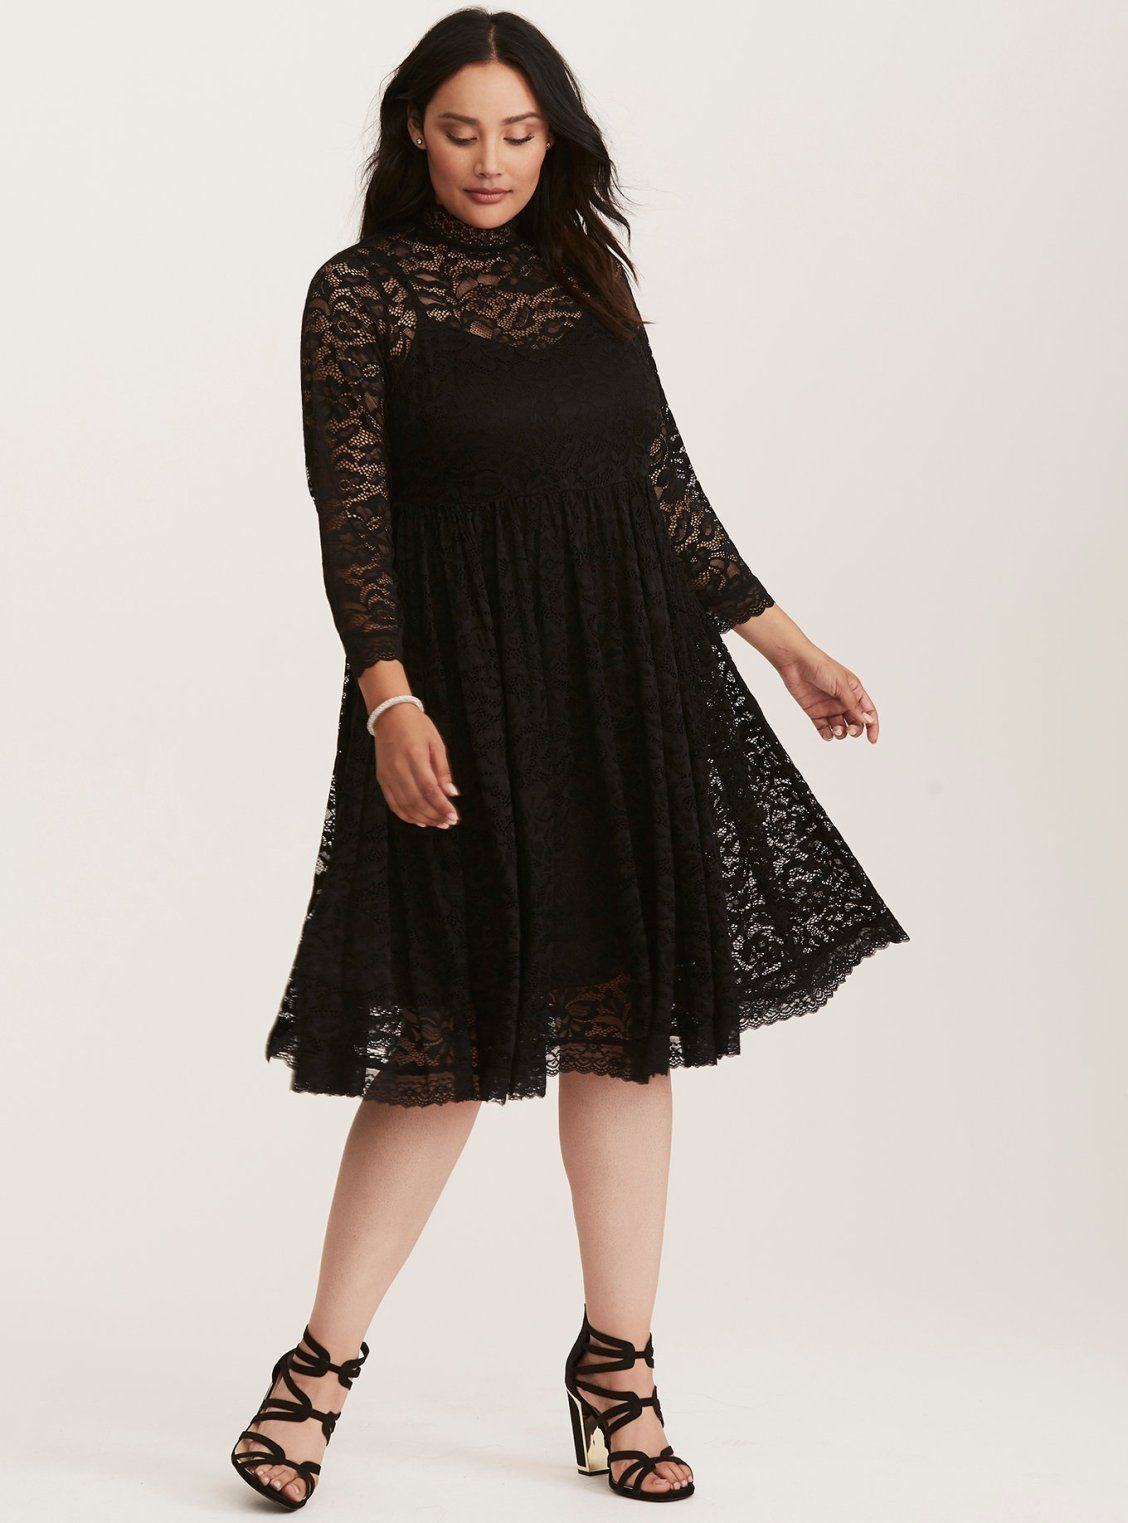 Plus Size Party Dresses Torrid – Unique Birthday Party Ideas and Themes